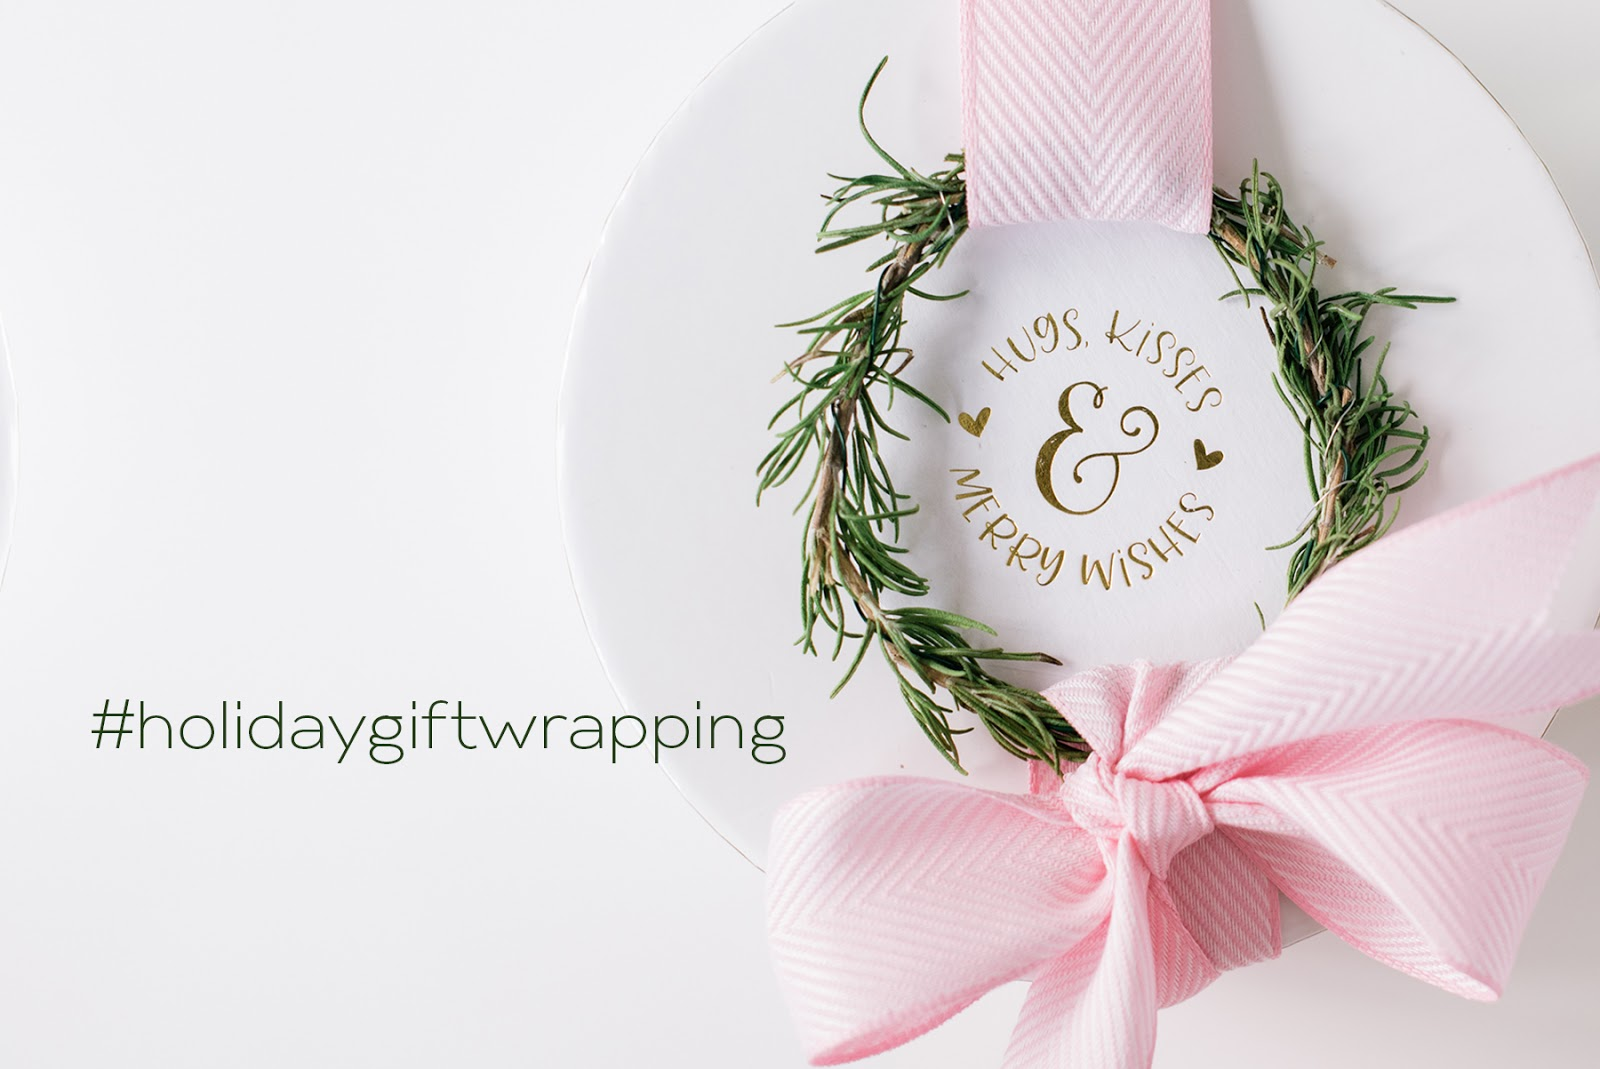 holiday gift wrapping inspiration from Creative Bag